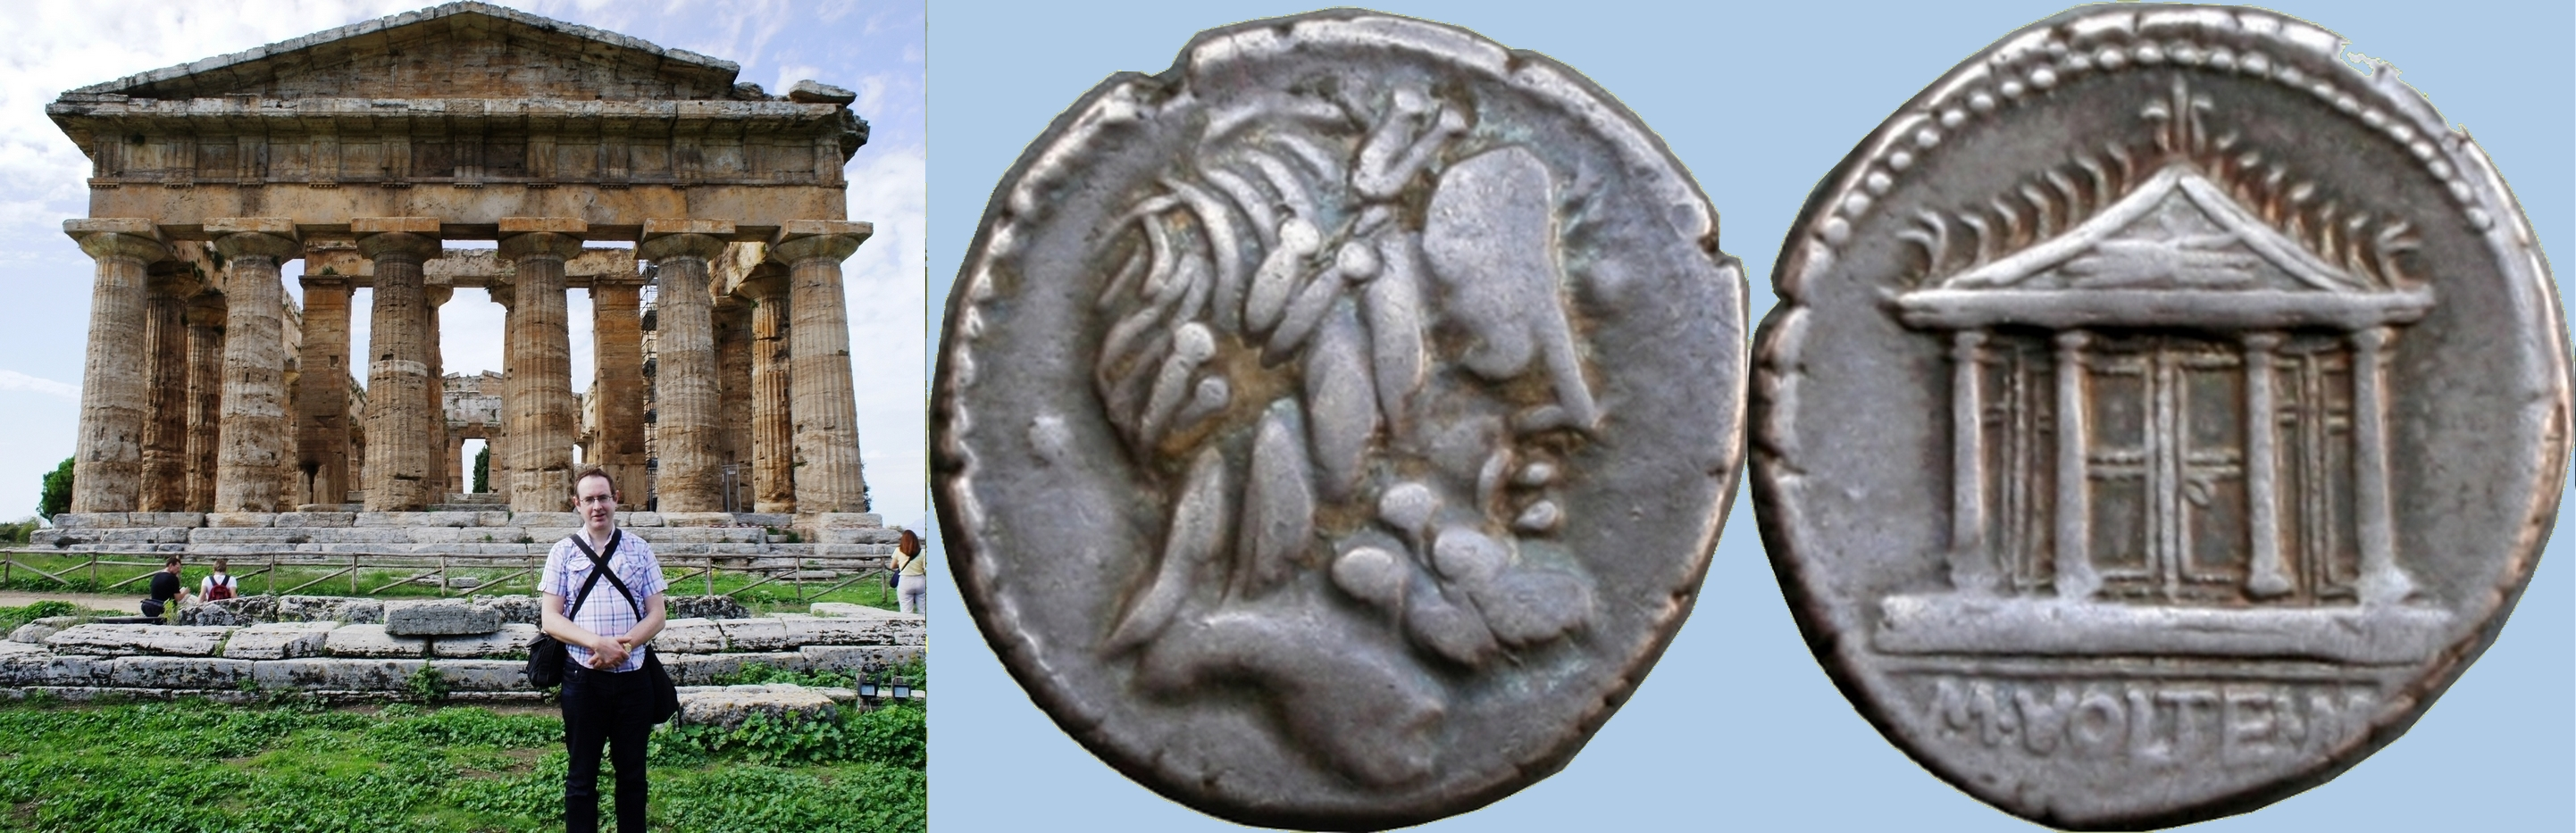 385/1 coin of Marcus Volteius with Temple of Jupiter Capitolinus alongside Paestum's Temple of Hera II 450BC